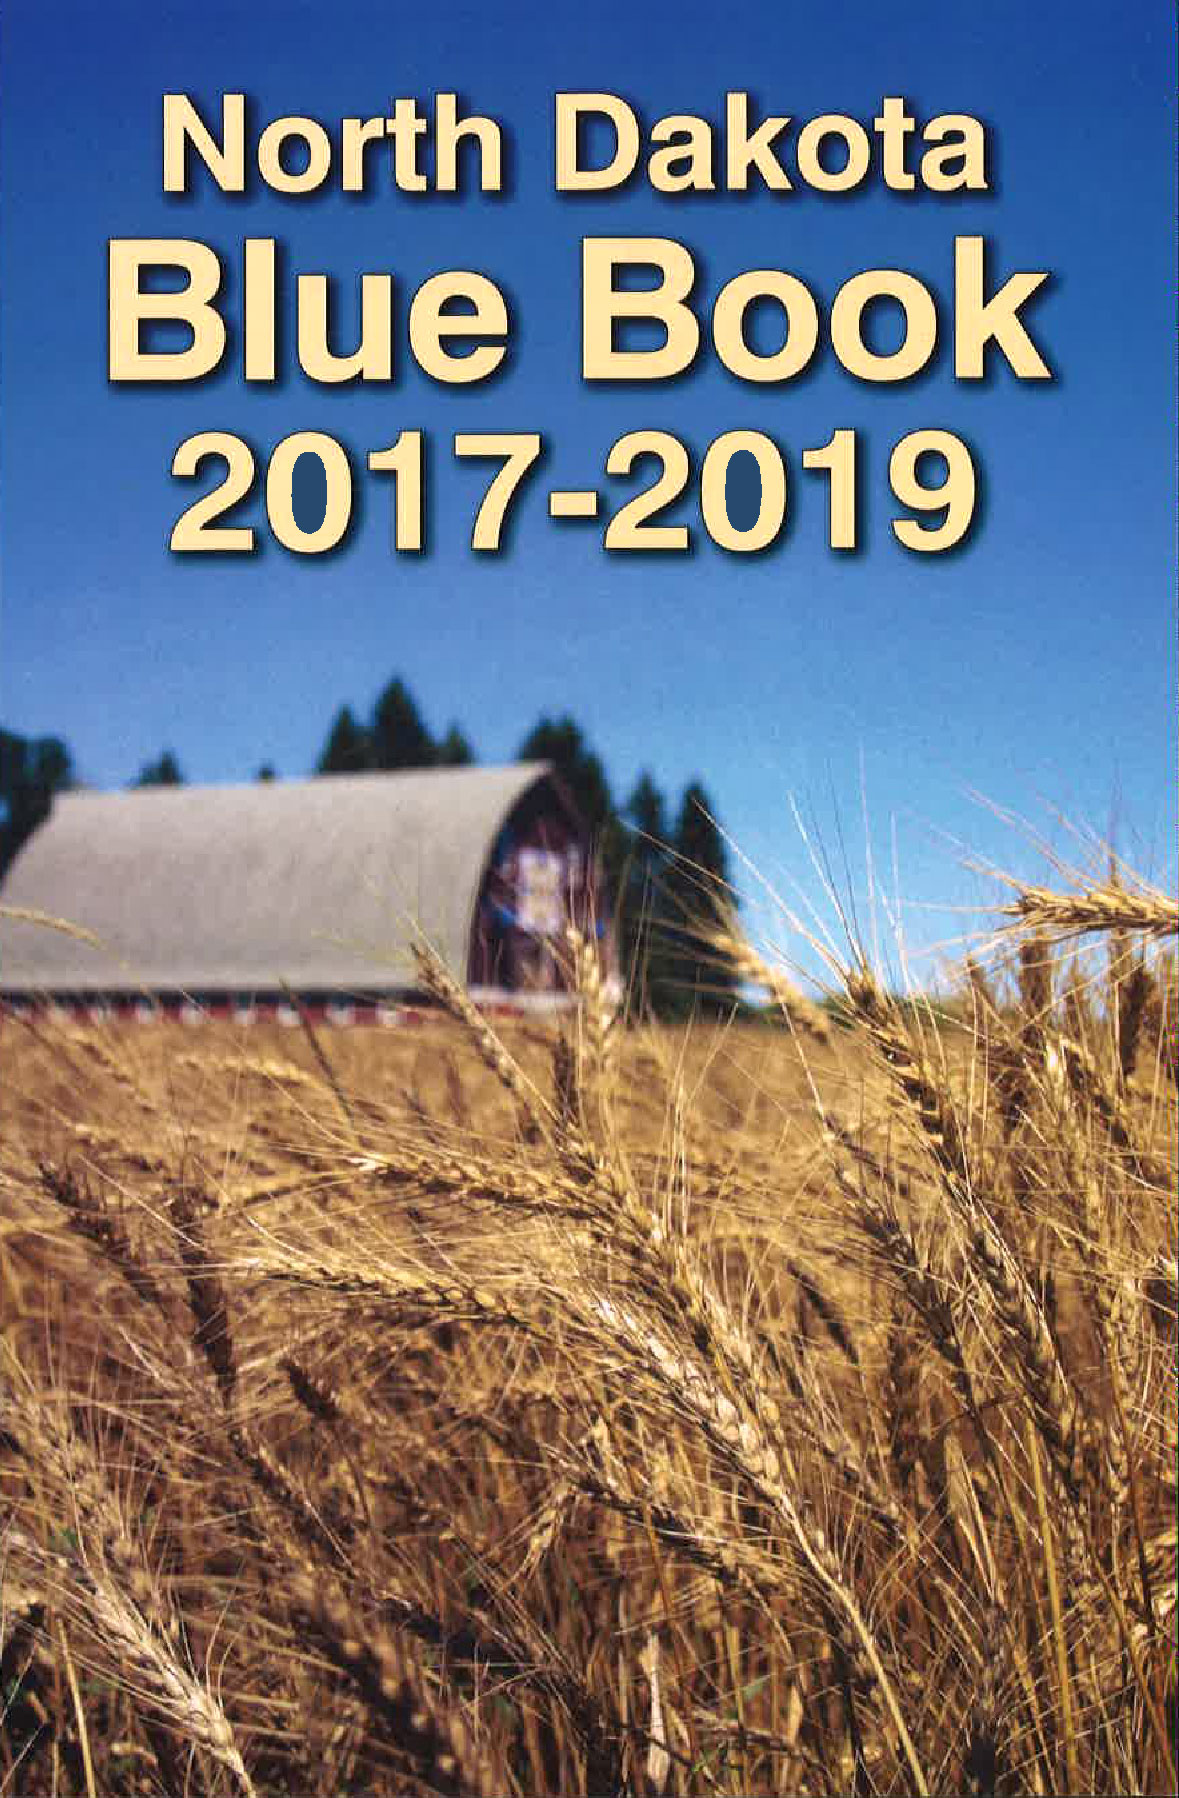 Blue Book Cover 2017-2019